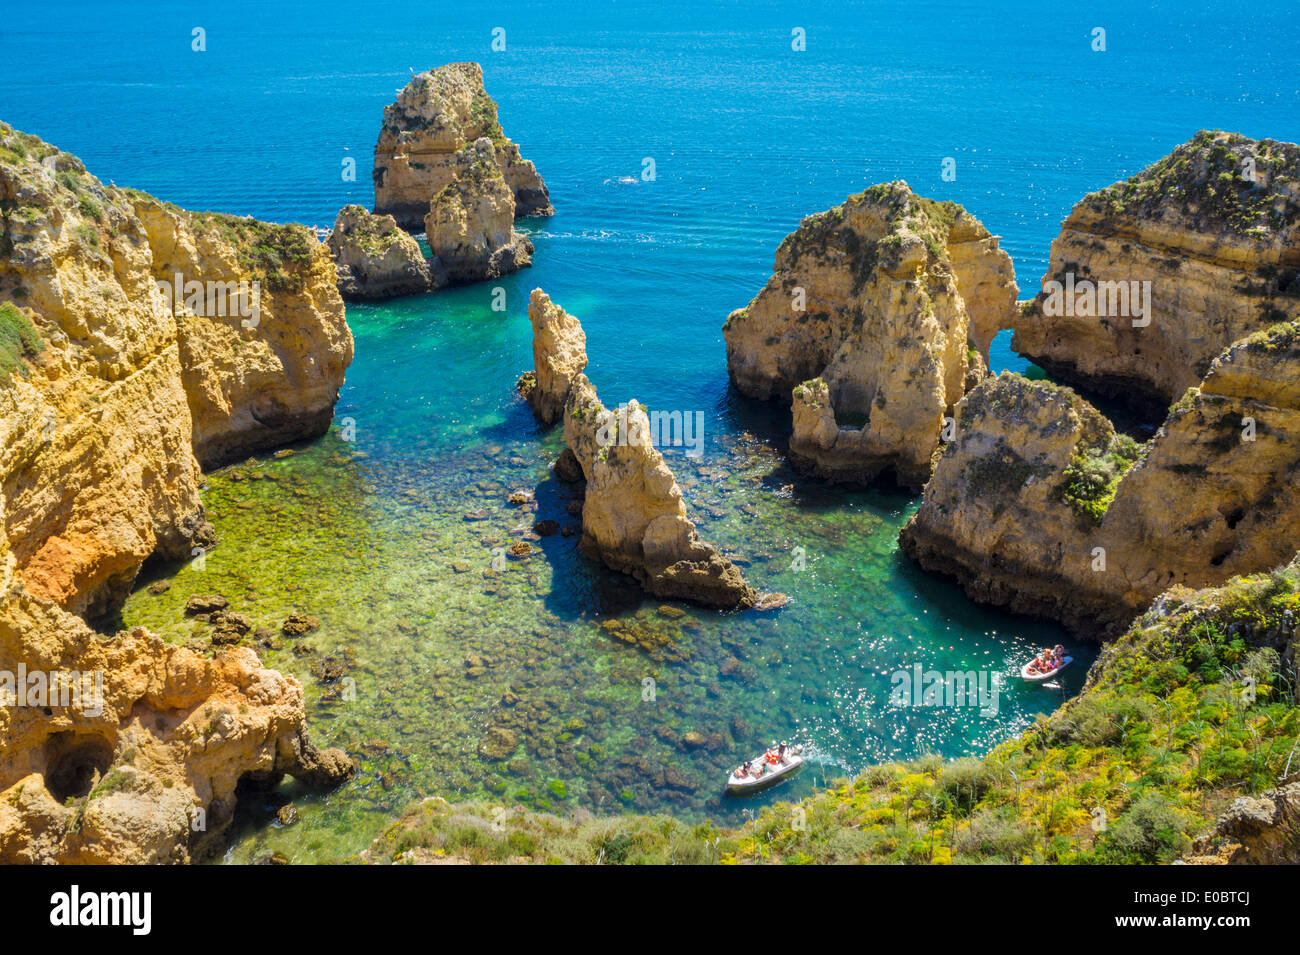 Caves and Rock arches at Ponta da Piedade near Lagos Algarve Portugal EU Europe - Stock Image